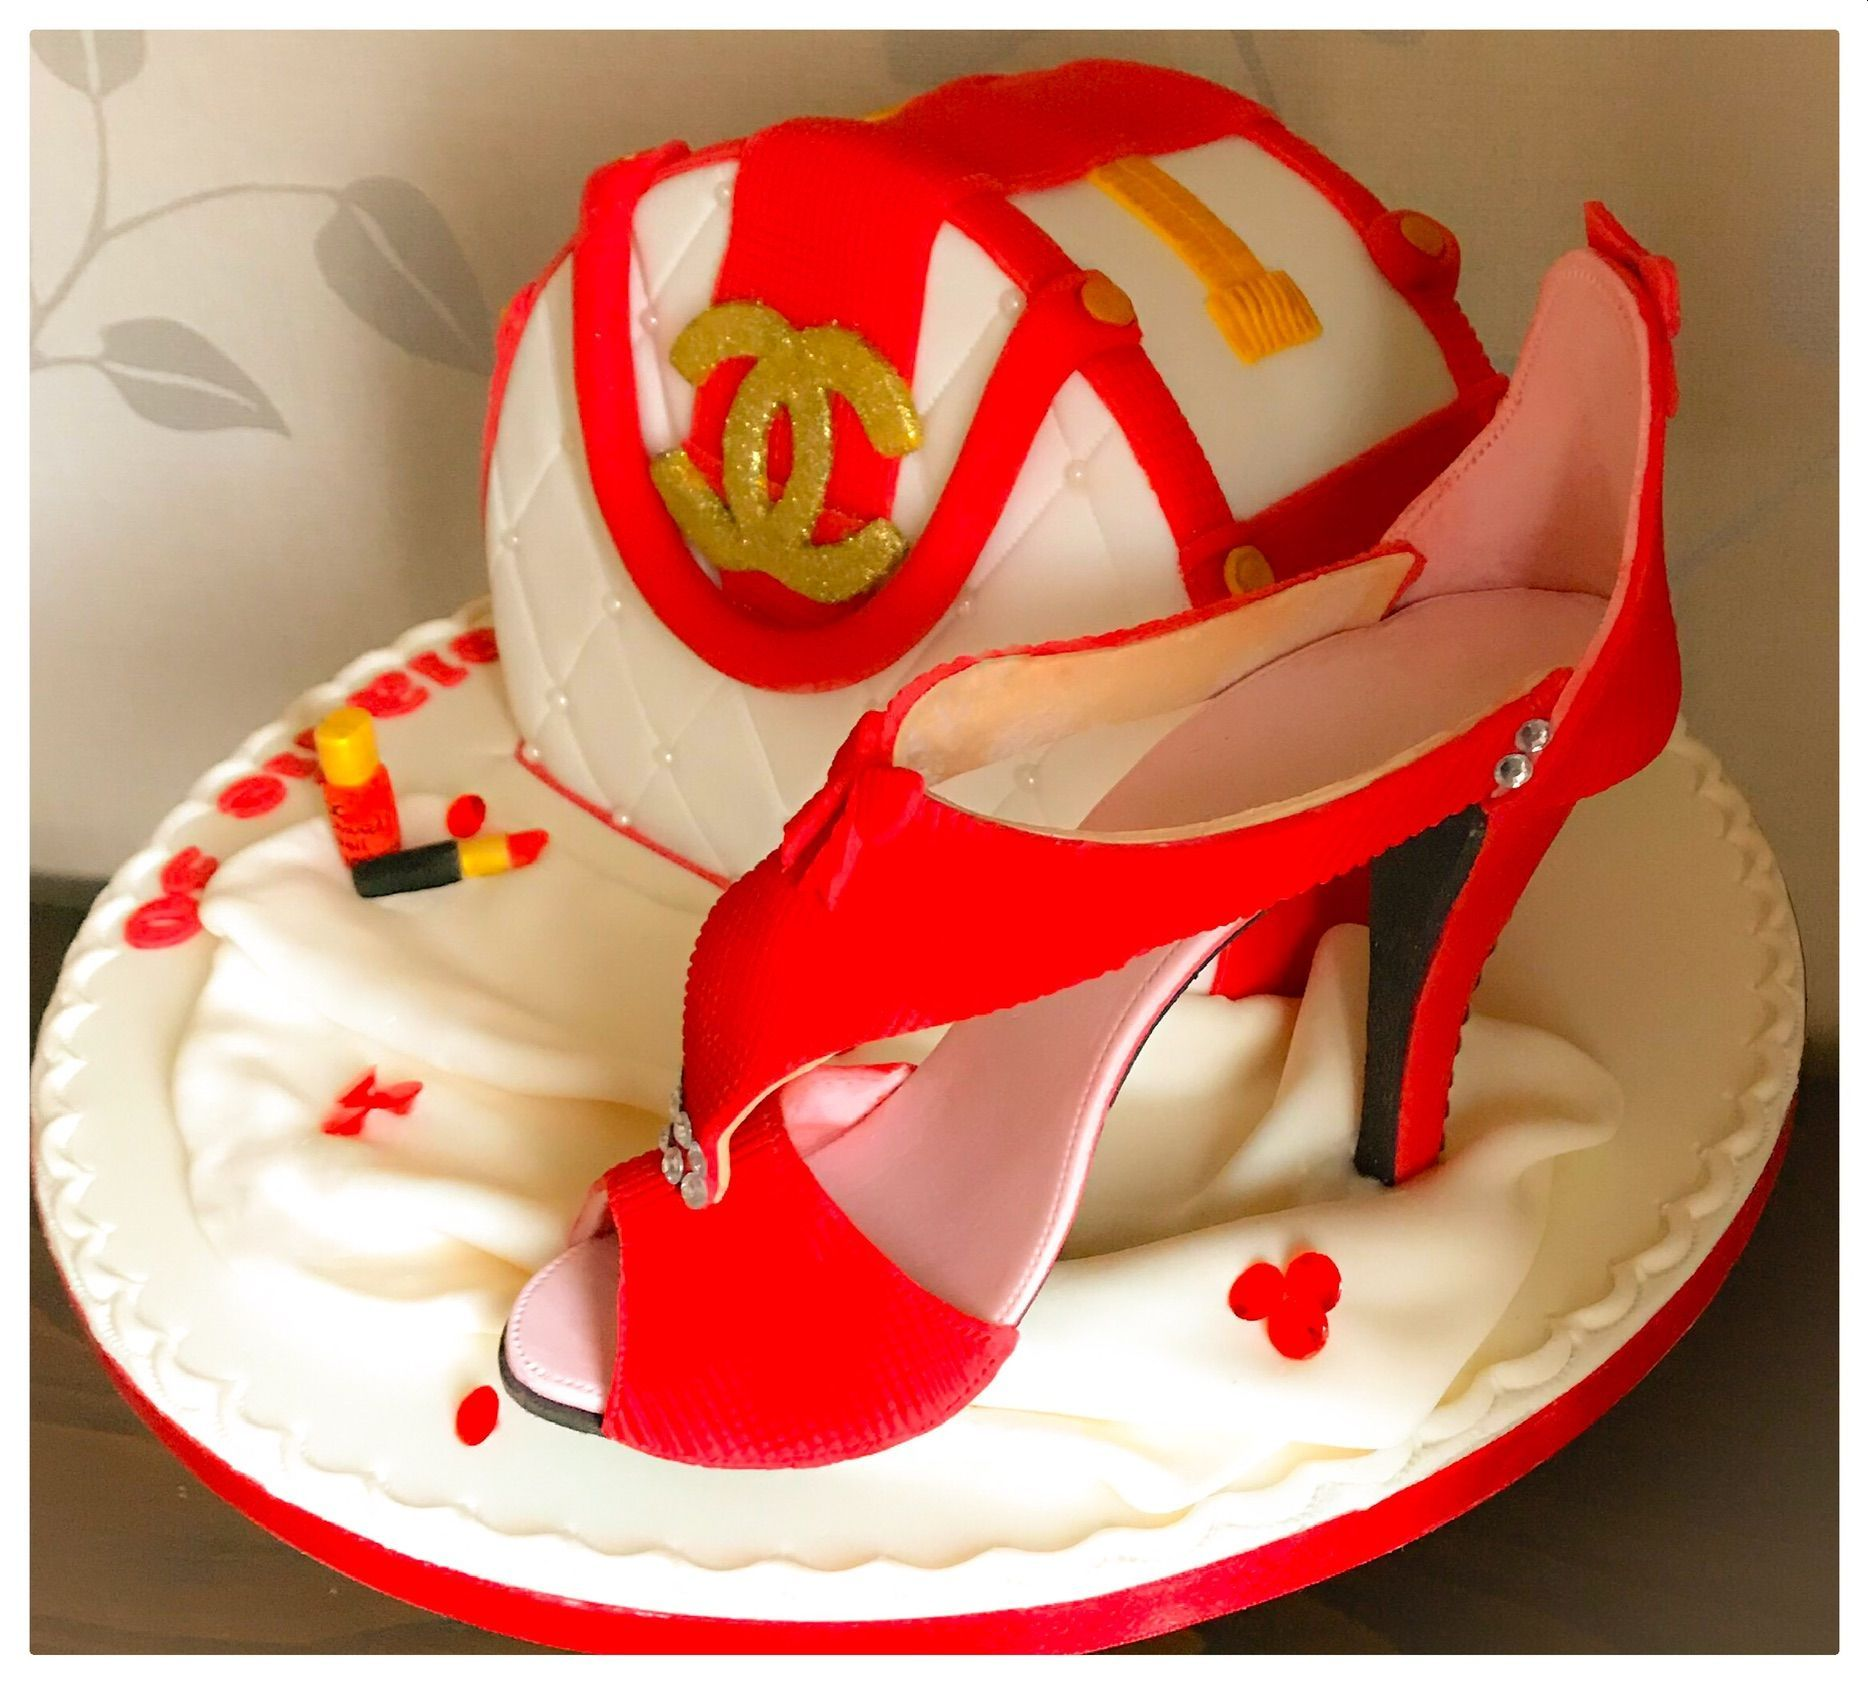 chanel handbag and shoe cake 2